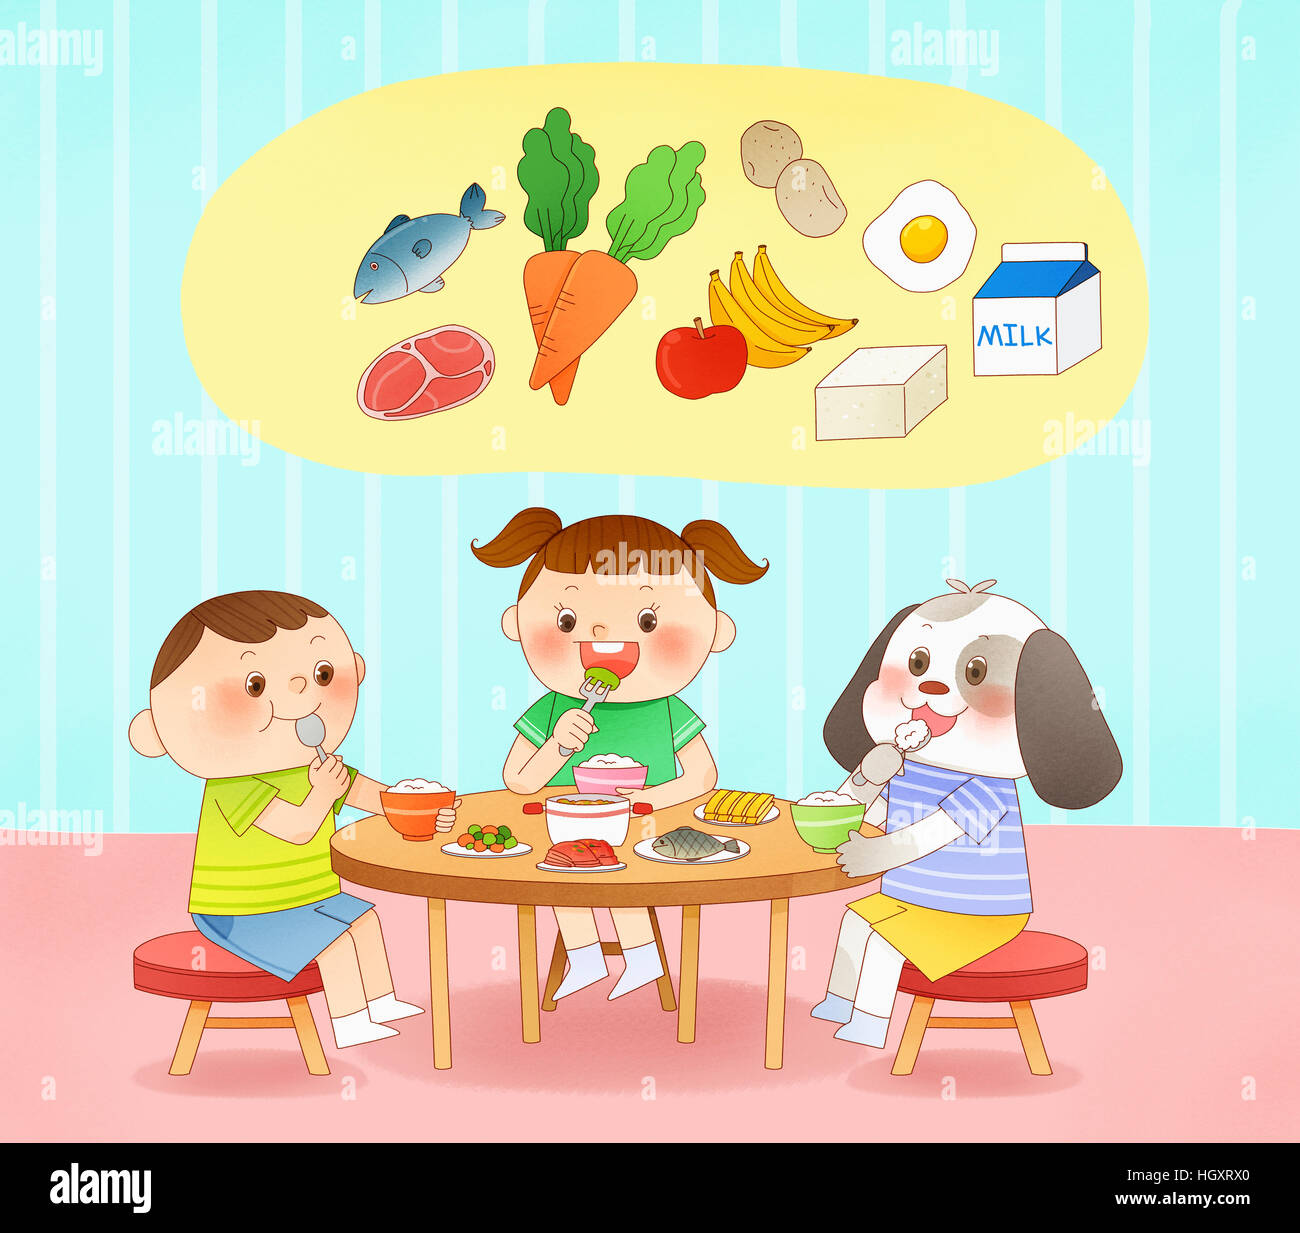 Smiling Children Eating Healthy Food Stock Photo Alamy